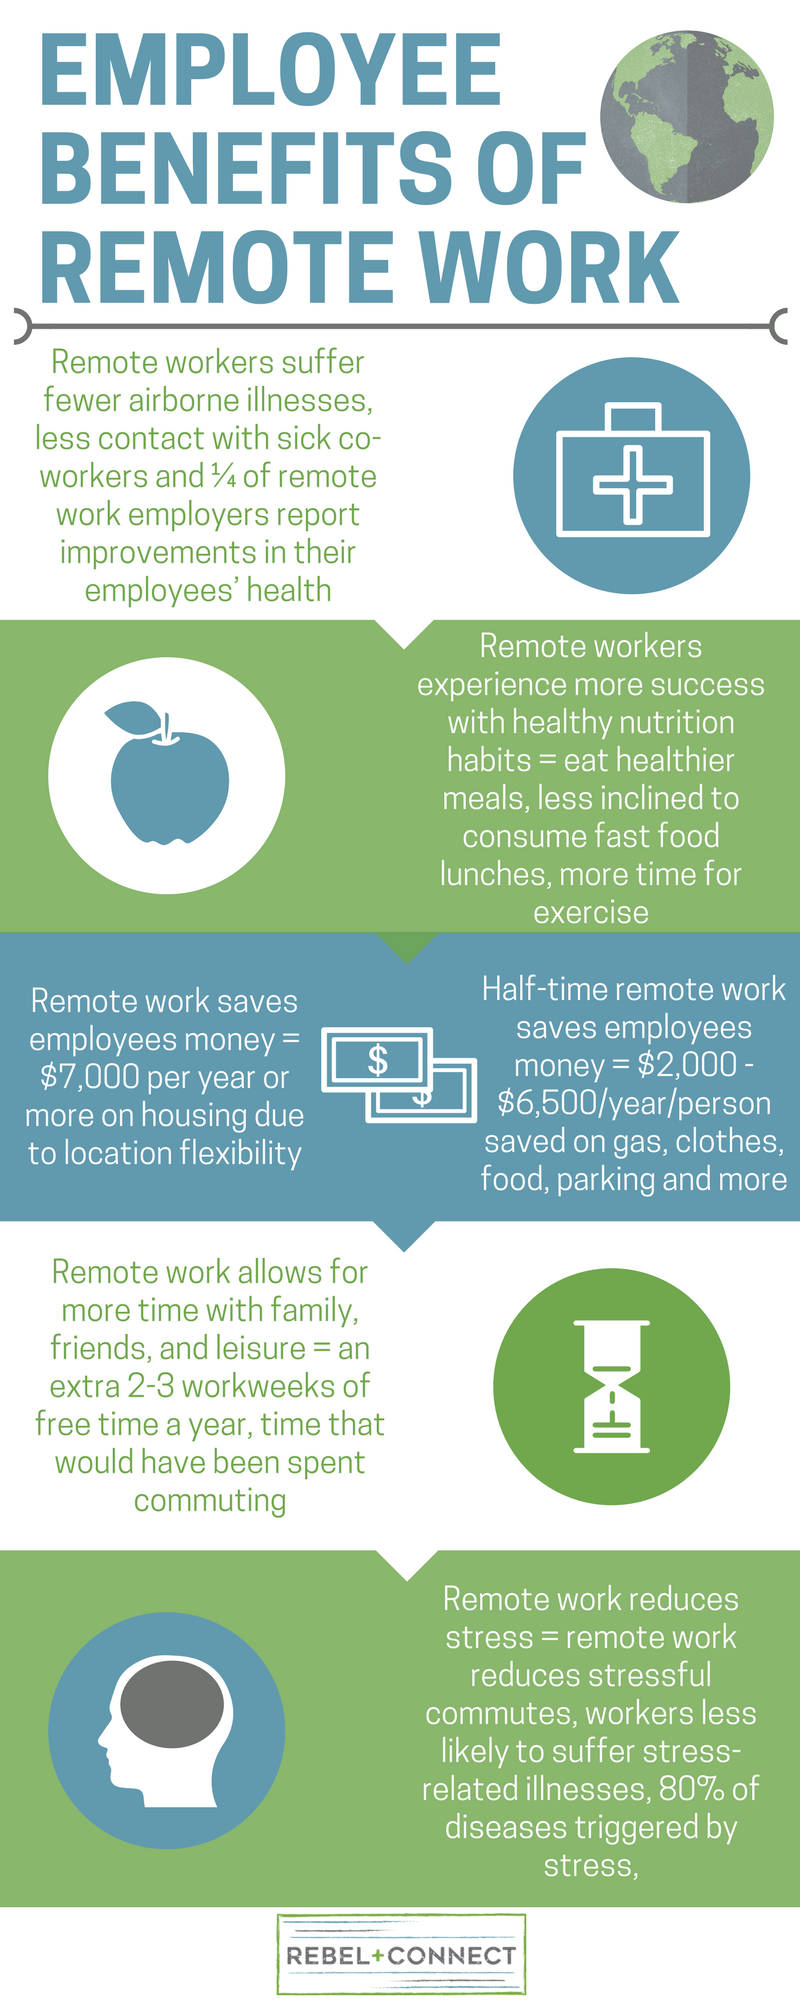 Employee Benefits of remote work include: less exposure to airborne illness or reduction in sick days, healthier eating habits, increased savings, increased work-life balance, and reductions in overall work related stress.